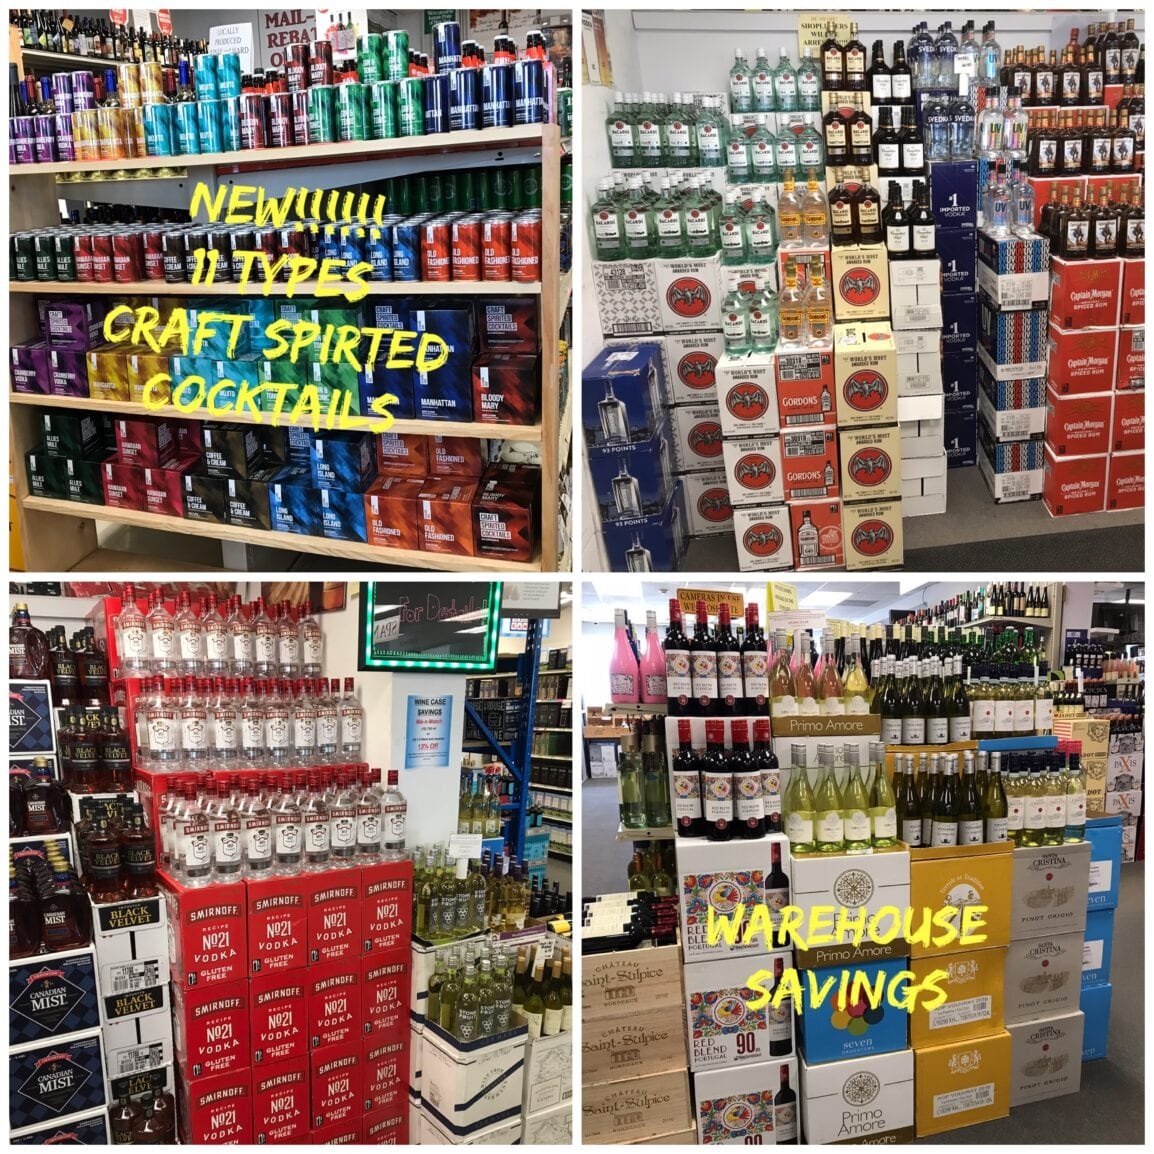 New Liquor and Wine Items